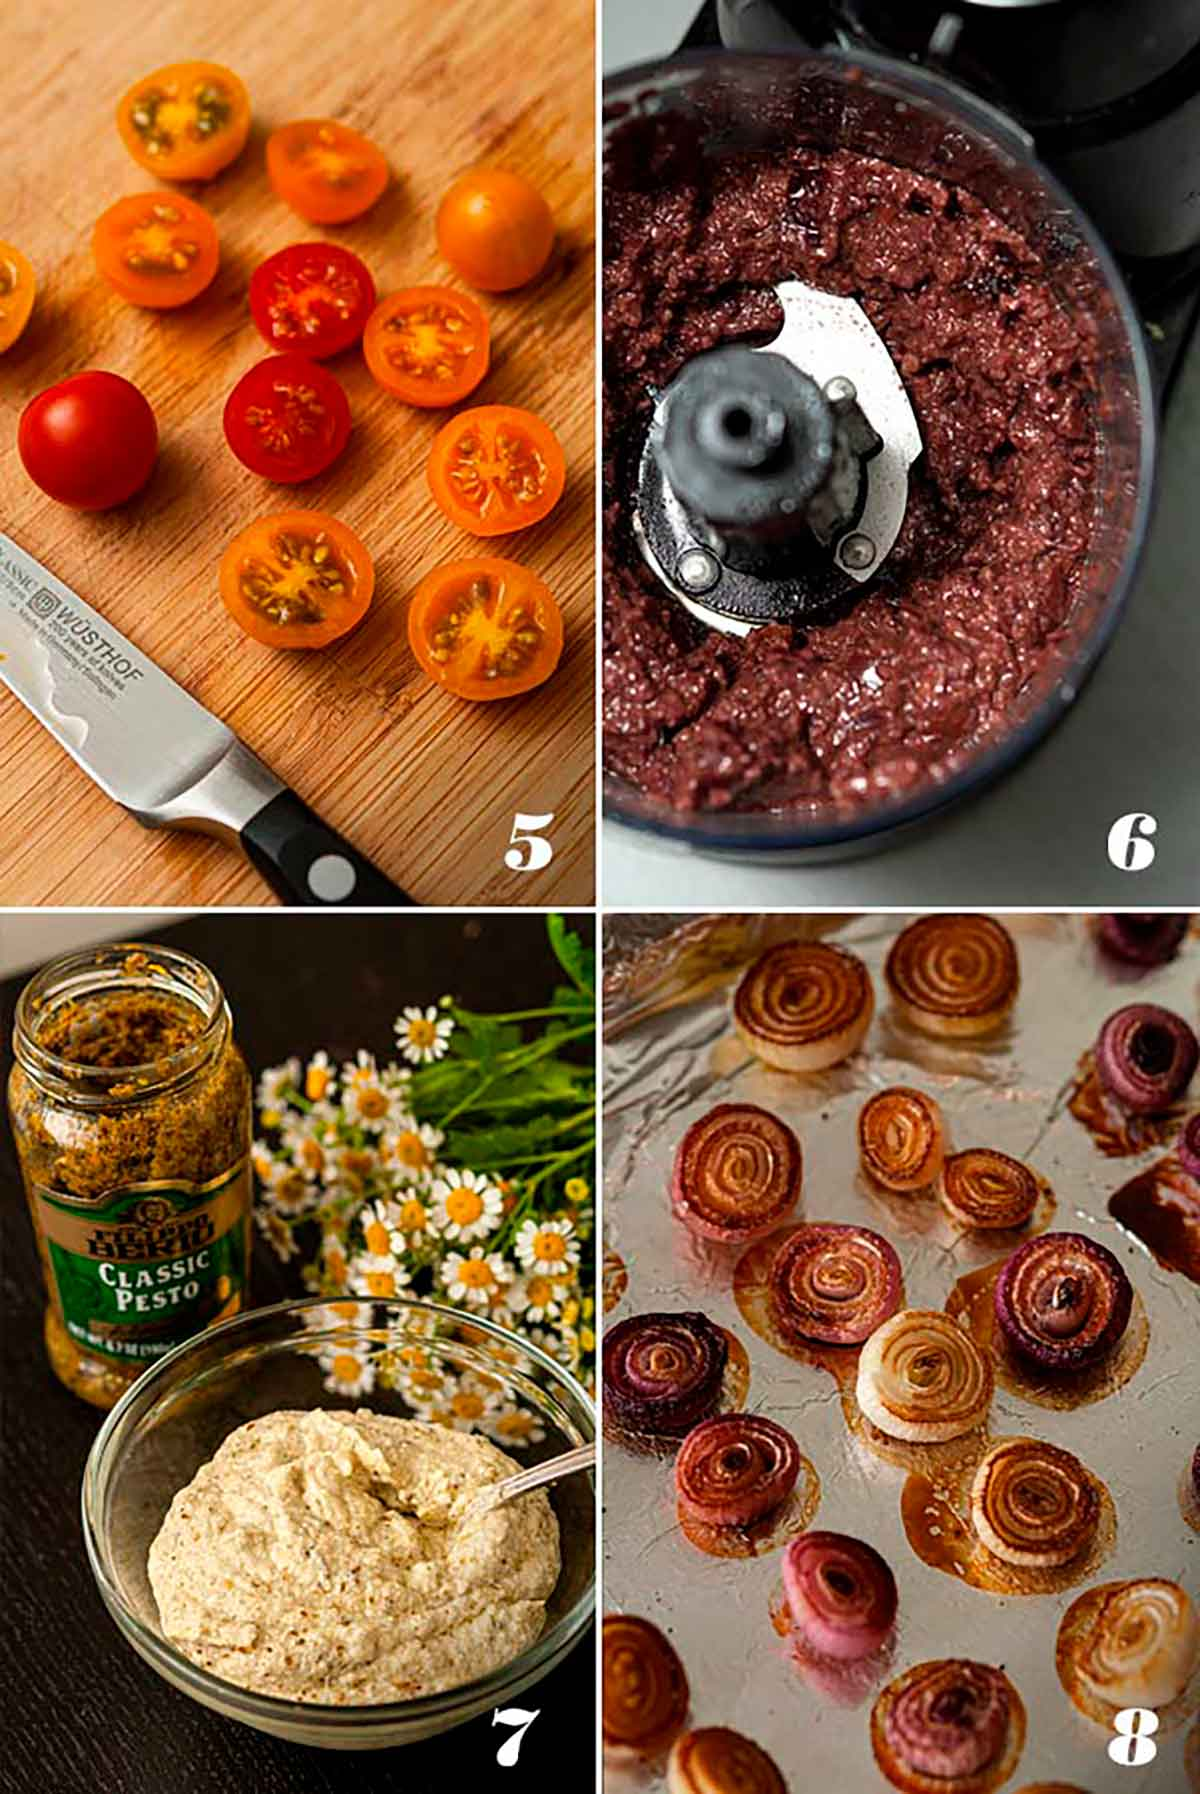 A collage of 4 numbered images showing how to slice tomatoes, make tapenade, make pesto ricotta and baked onions.